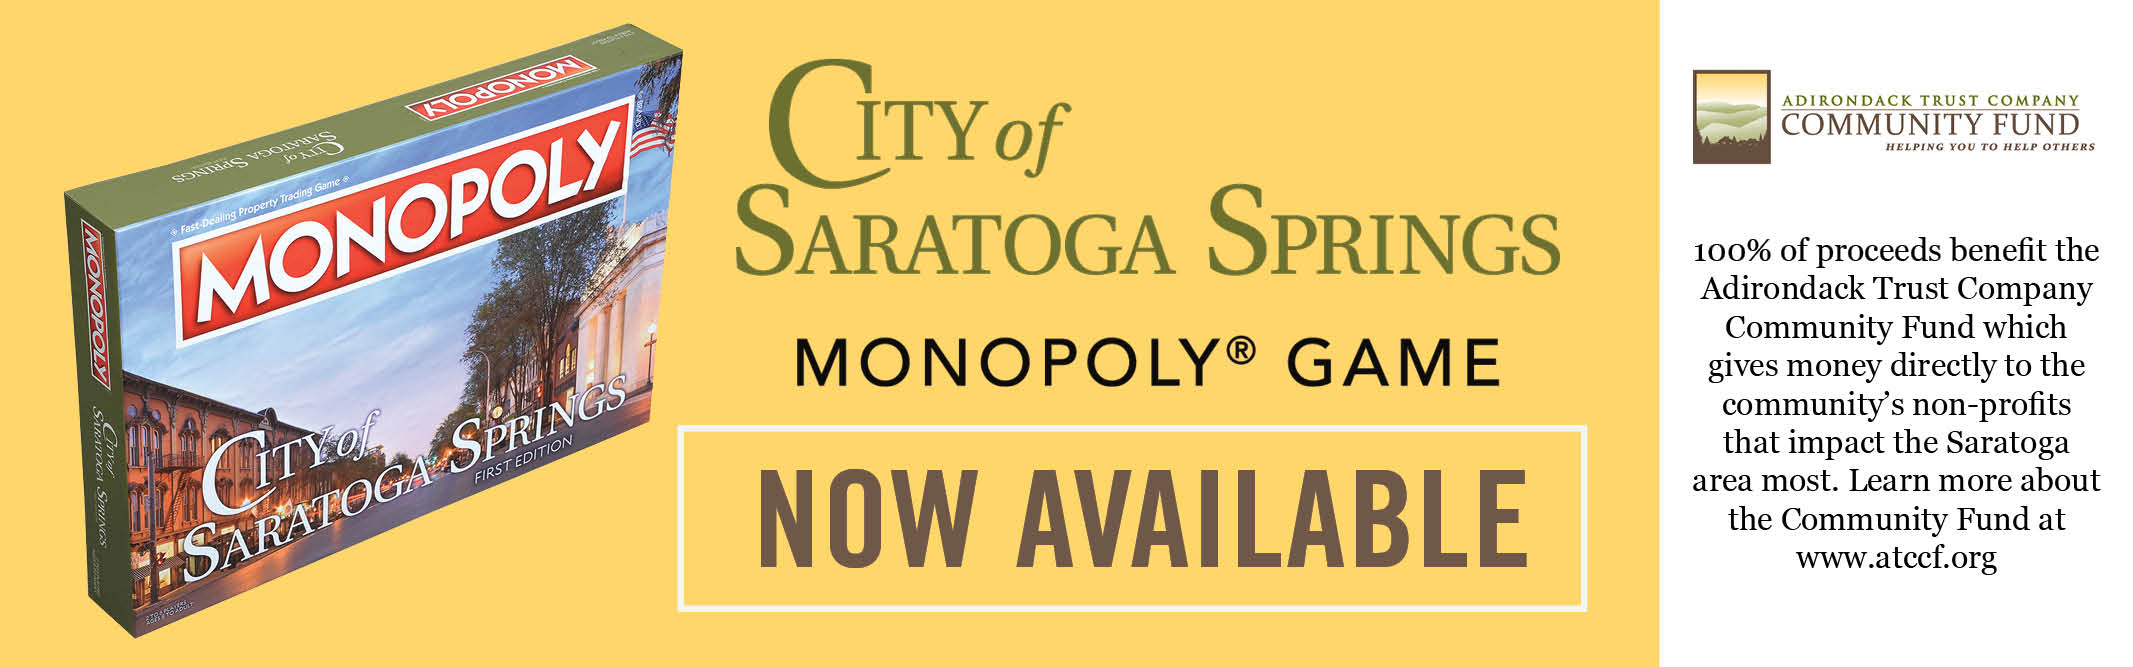 City of Saratoga Springs Monopoly Game